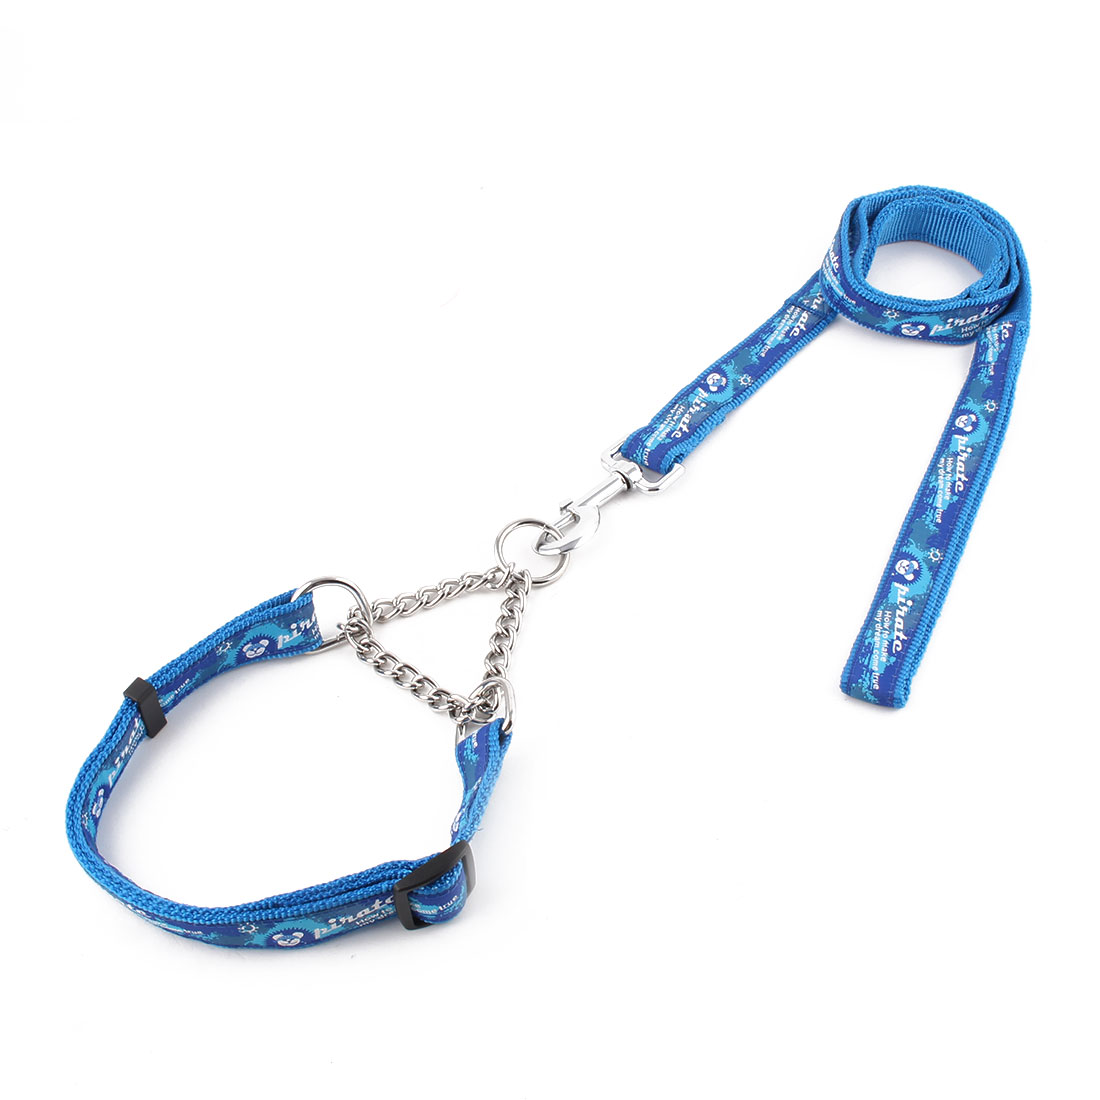 Pet Dog Nylon Pirate Printed Collar Training Lead Traction Rope Leash Strap Blue